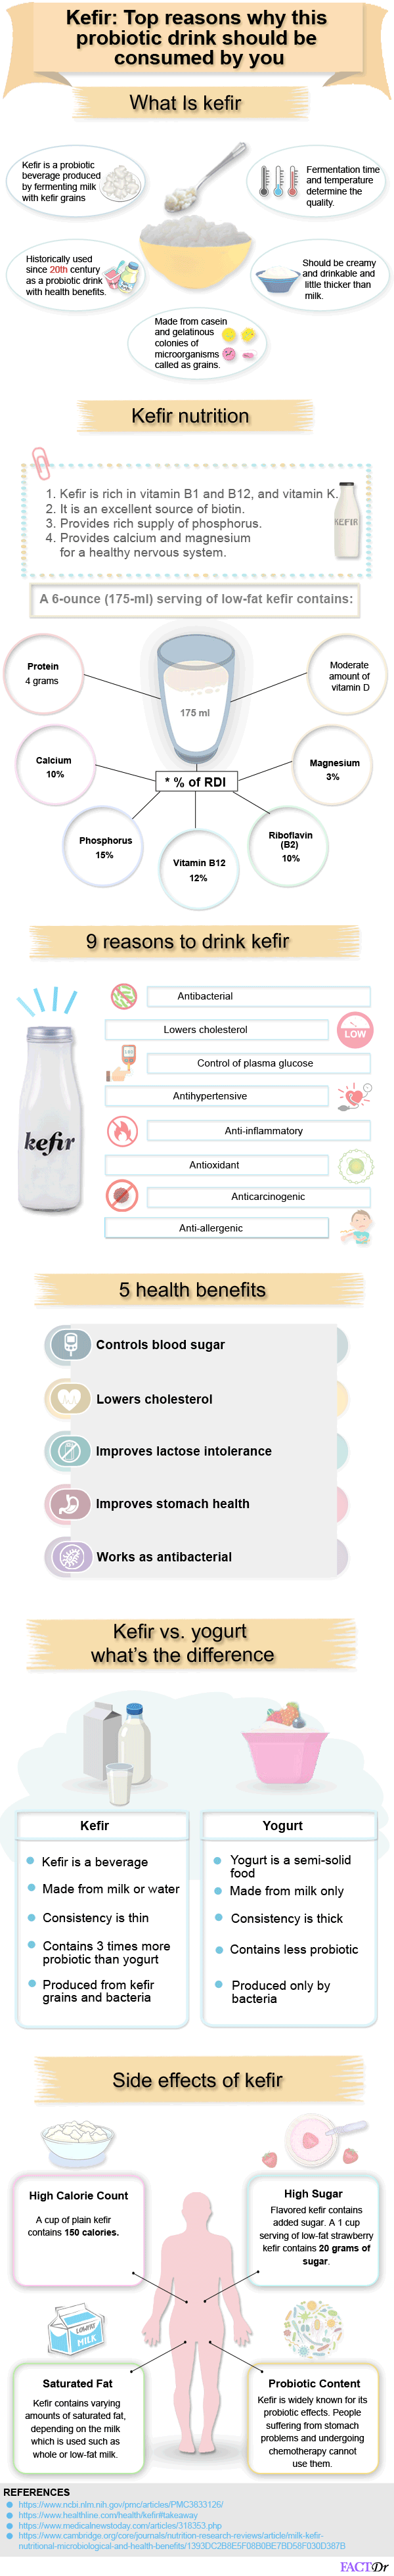 Top Reasons Why Kefir Should Be Consumed By You